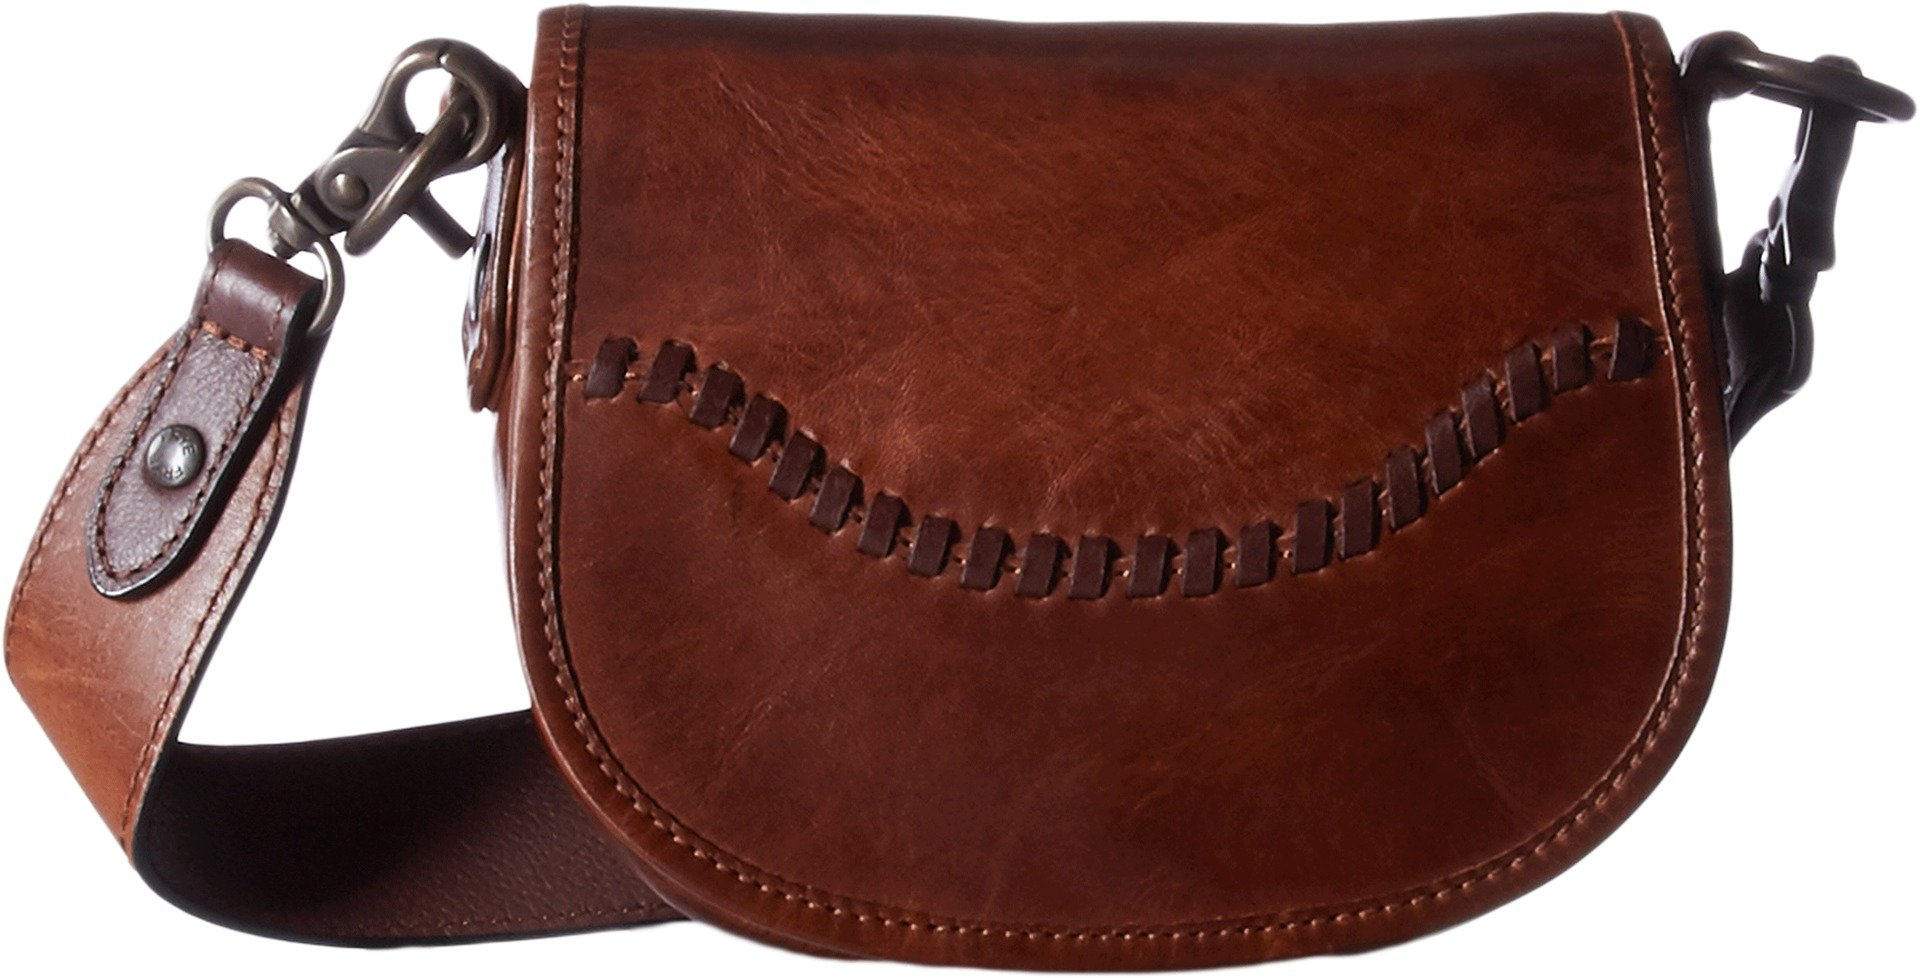 FRYE Melissa Whipstitch Mini Saddle, Cognac by FRYE